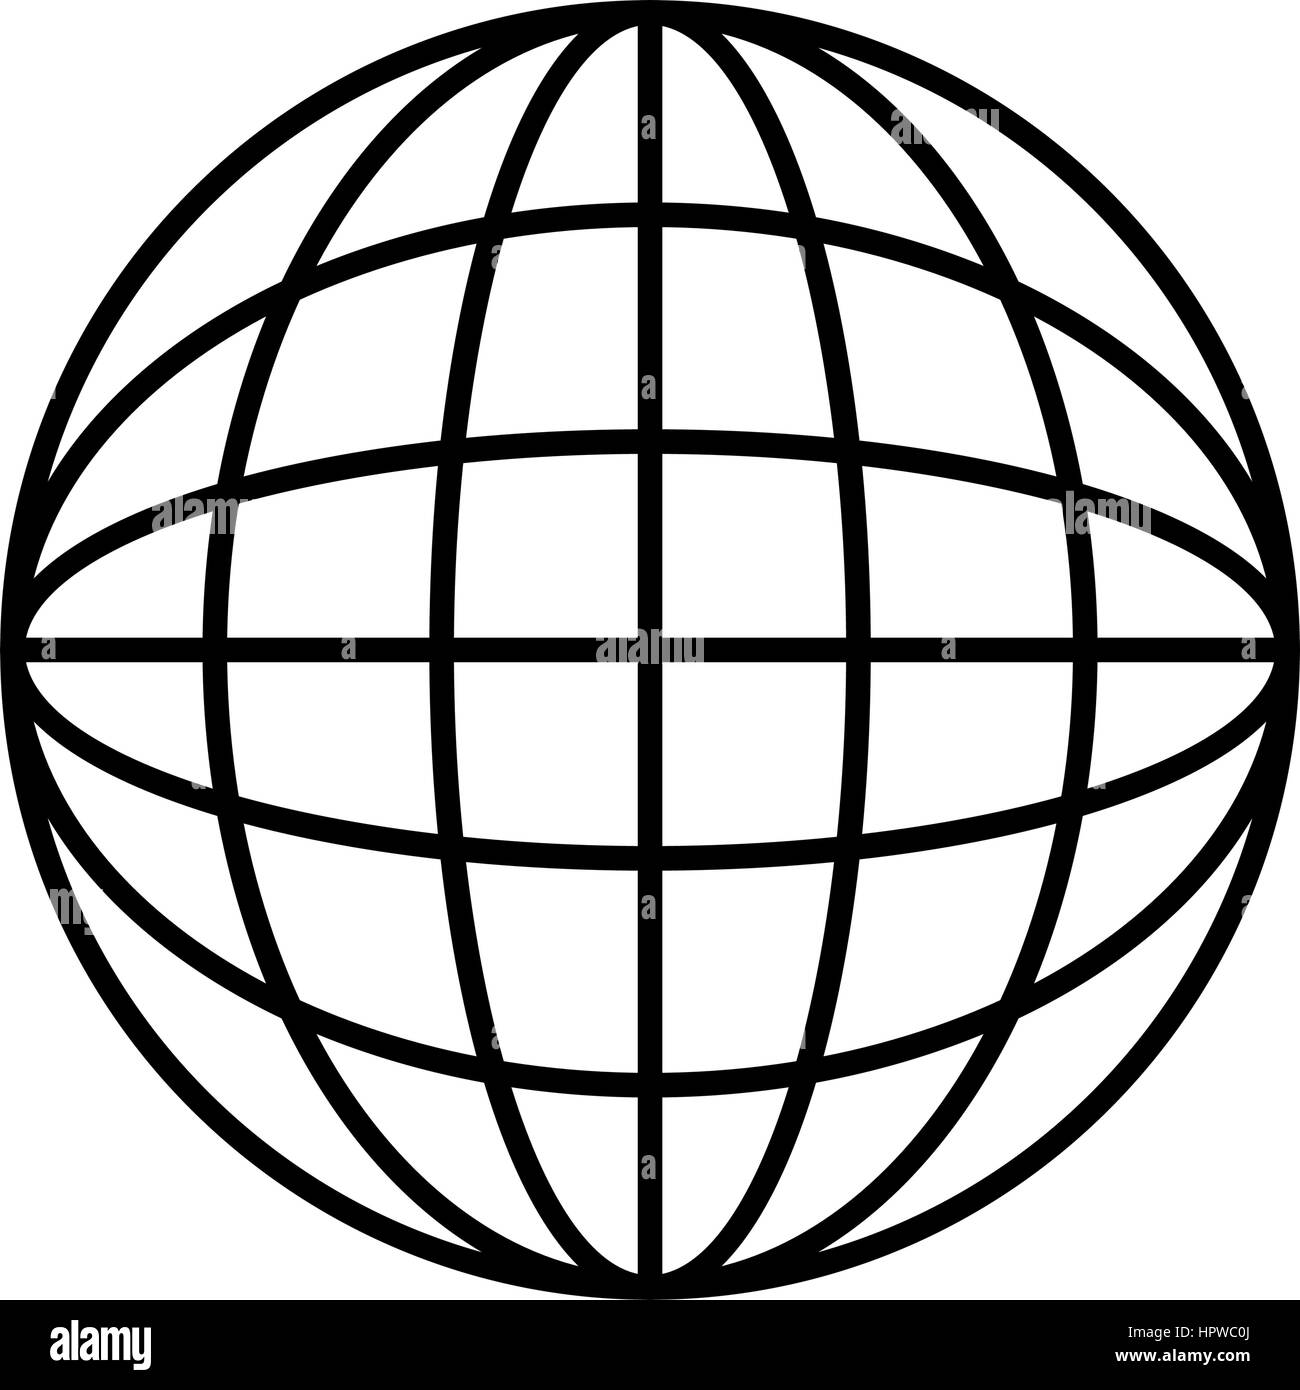 silhouette sphere with lines cartographic - Stock Image